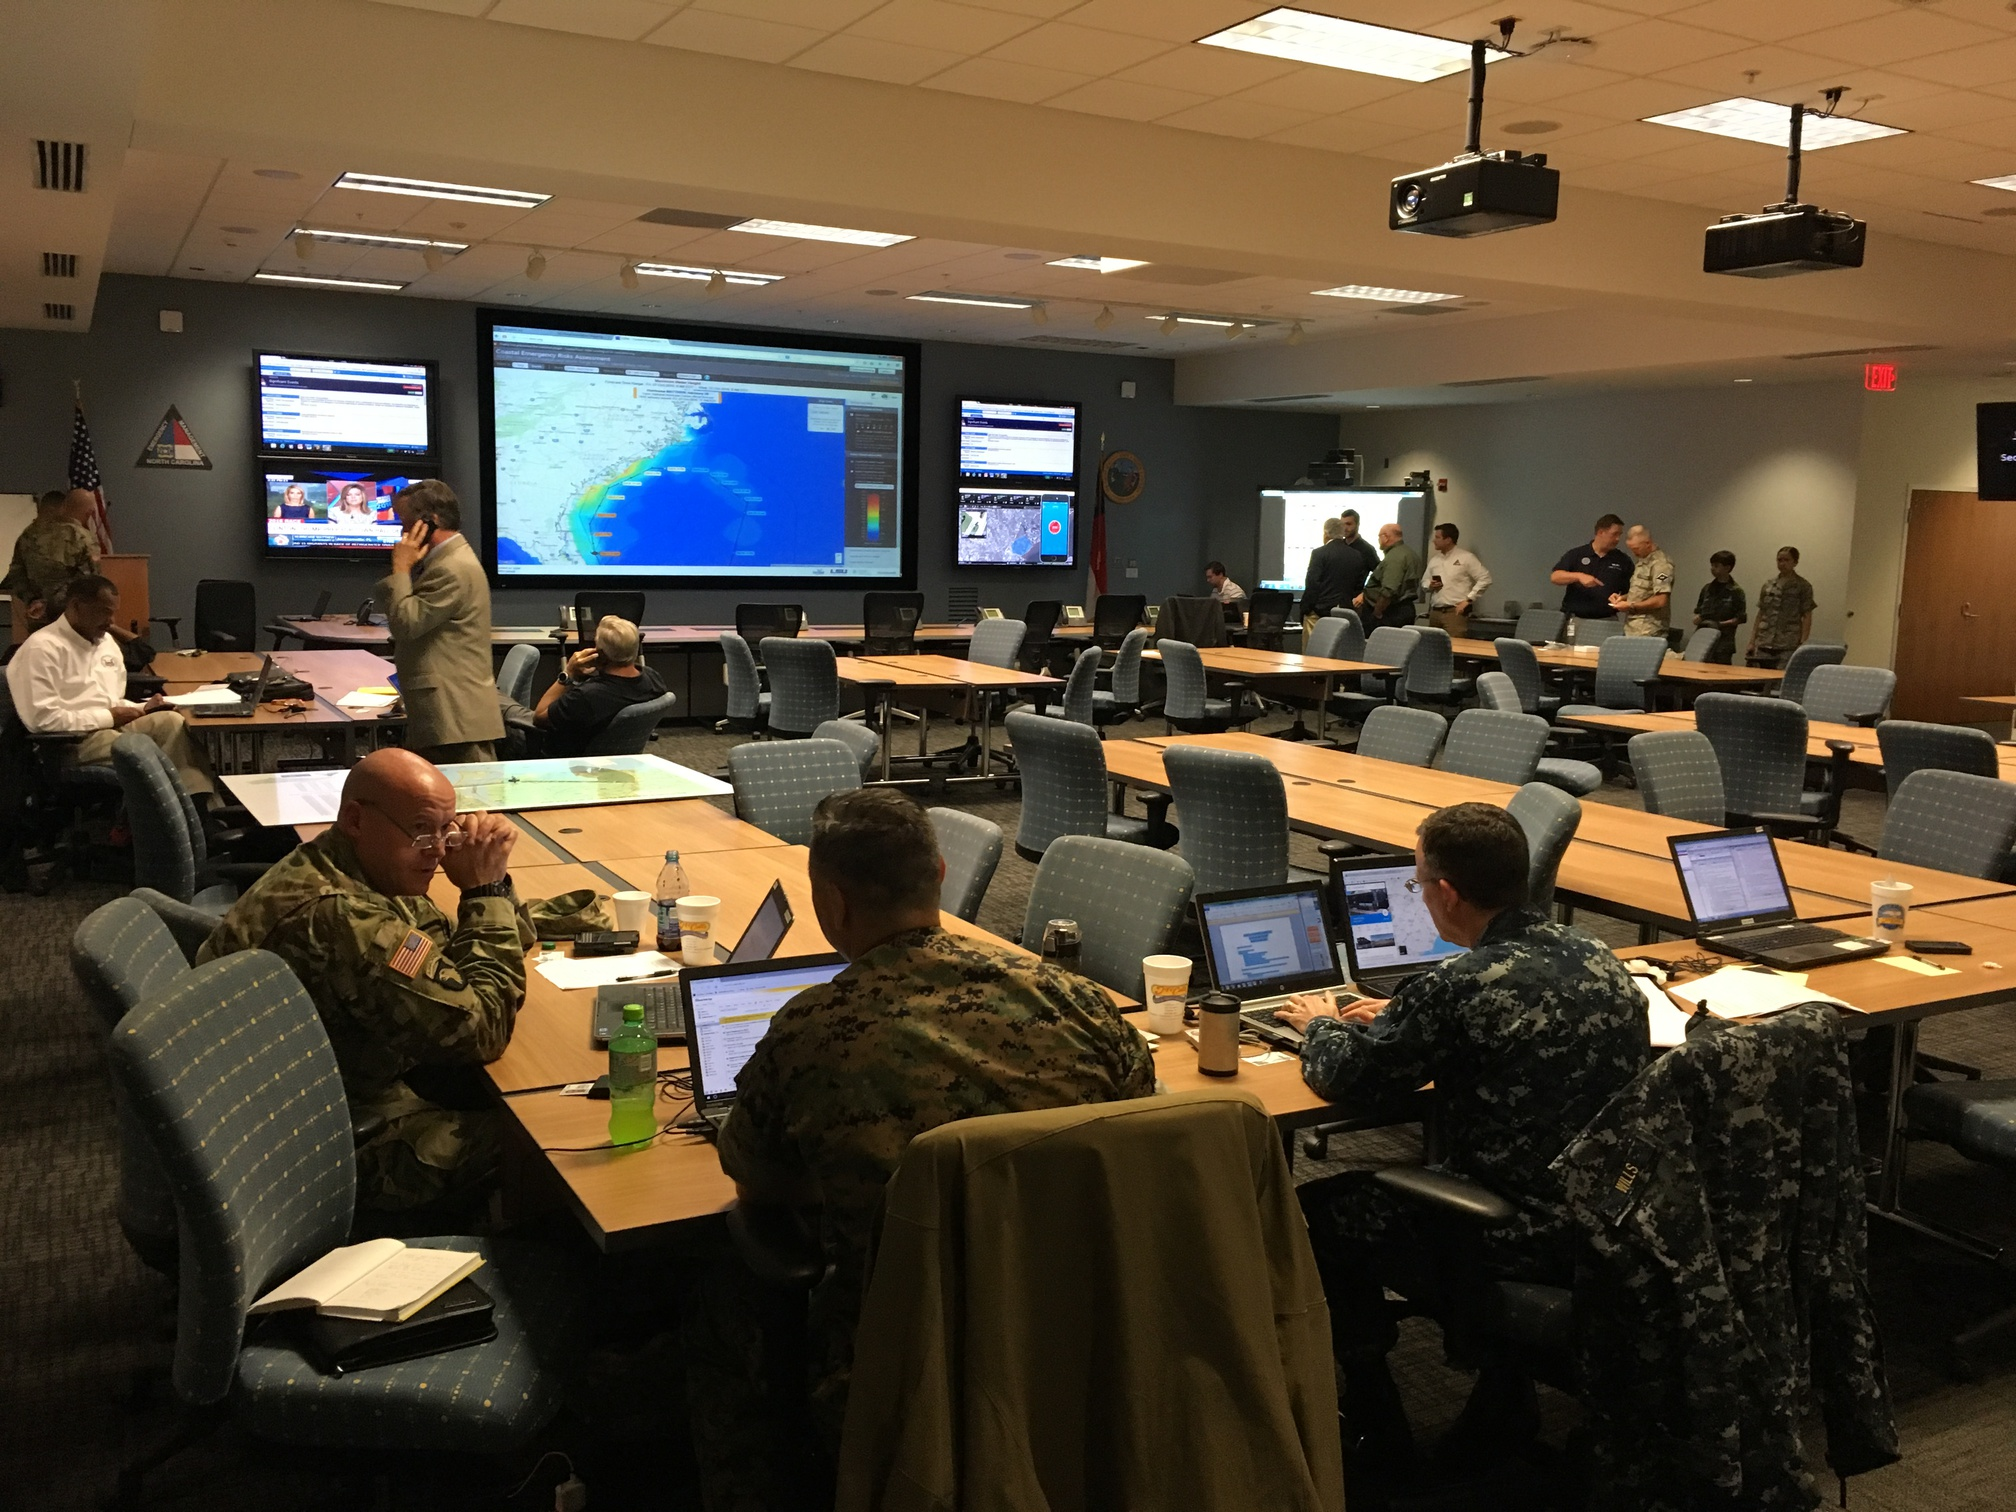 The CERA website is used during Hurricane Matthew preparations at the NCEM Emergency Operations Center.